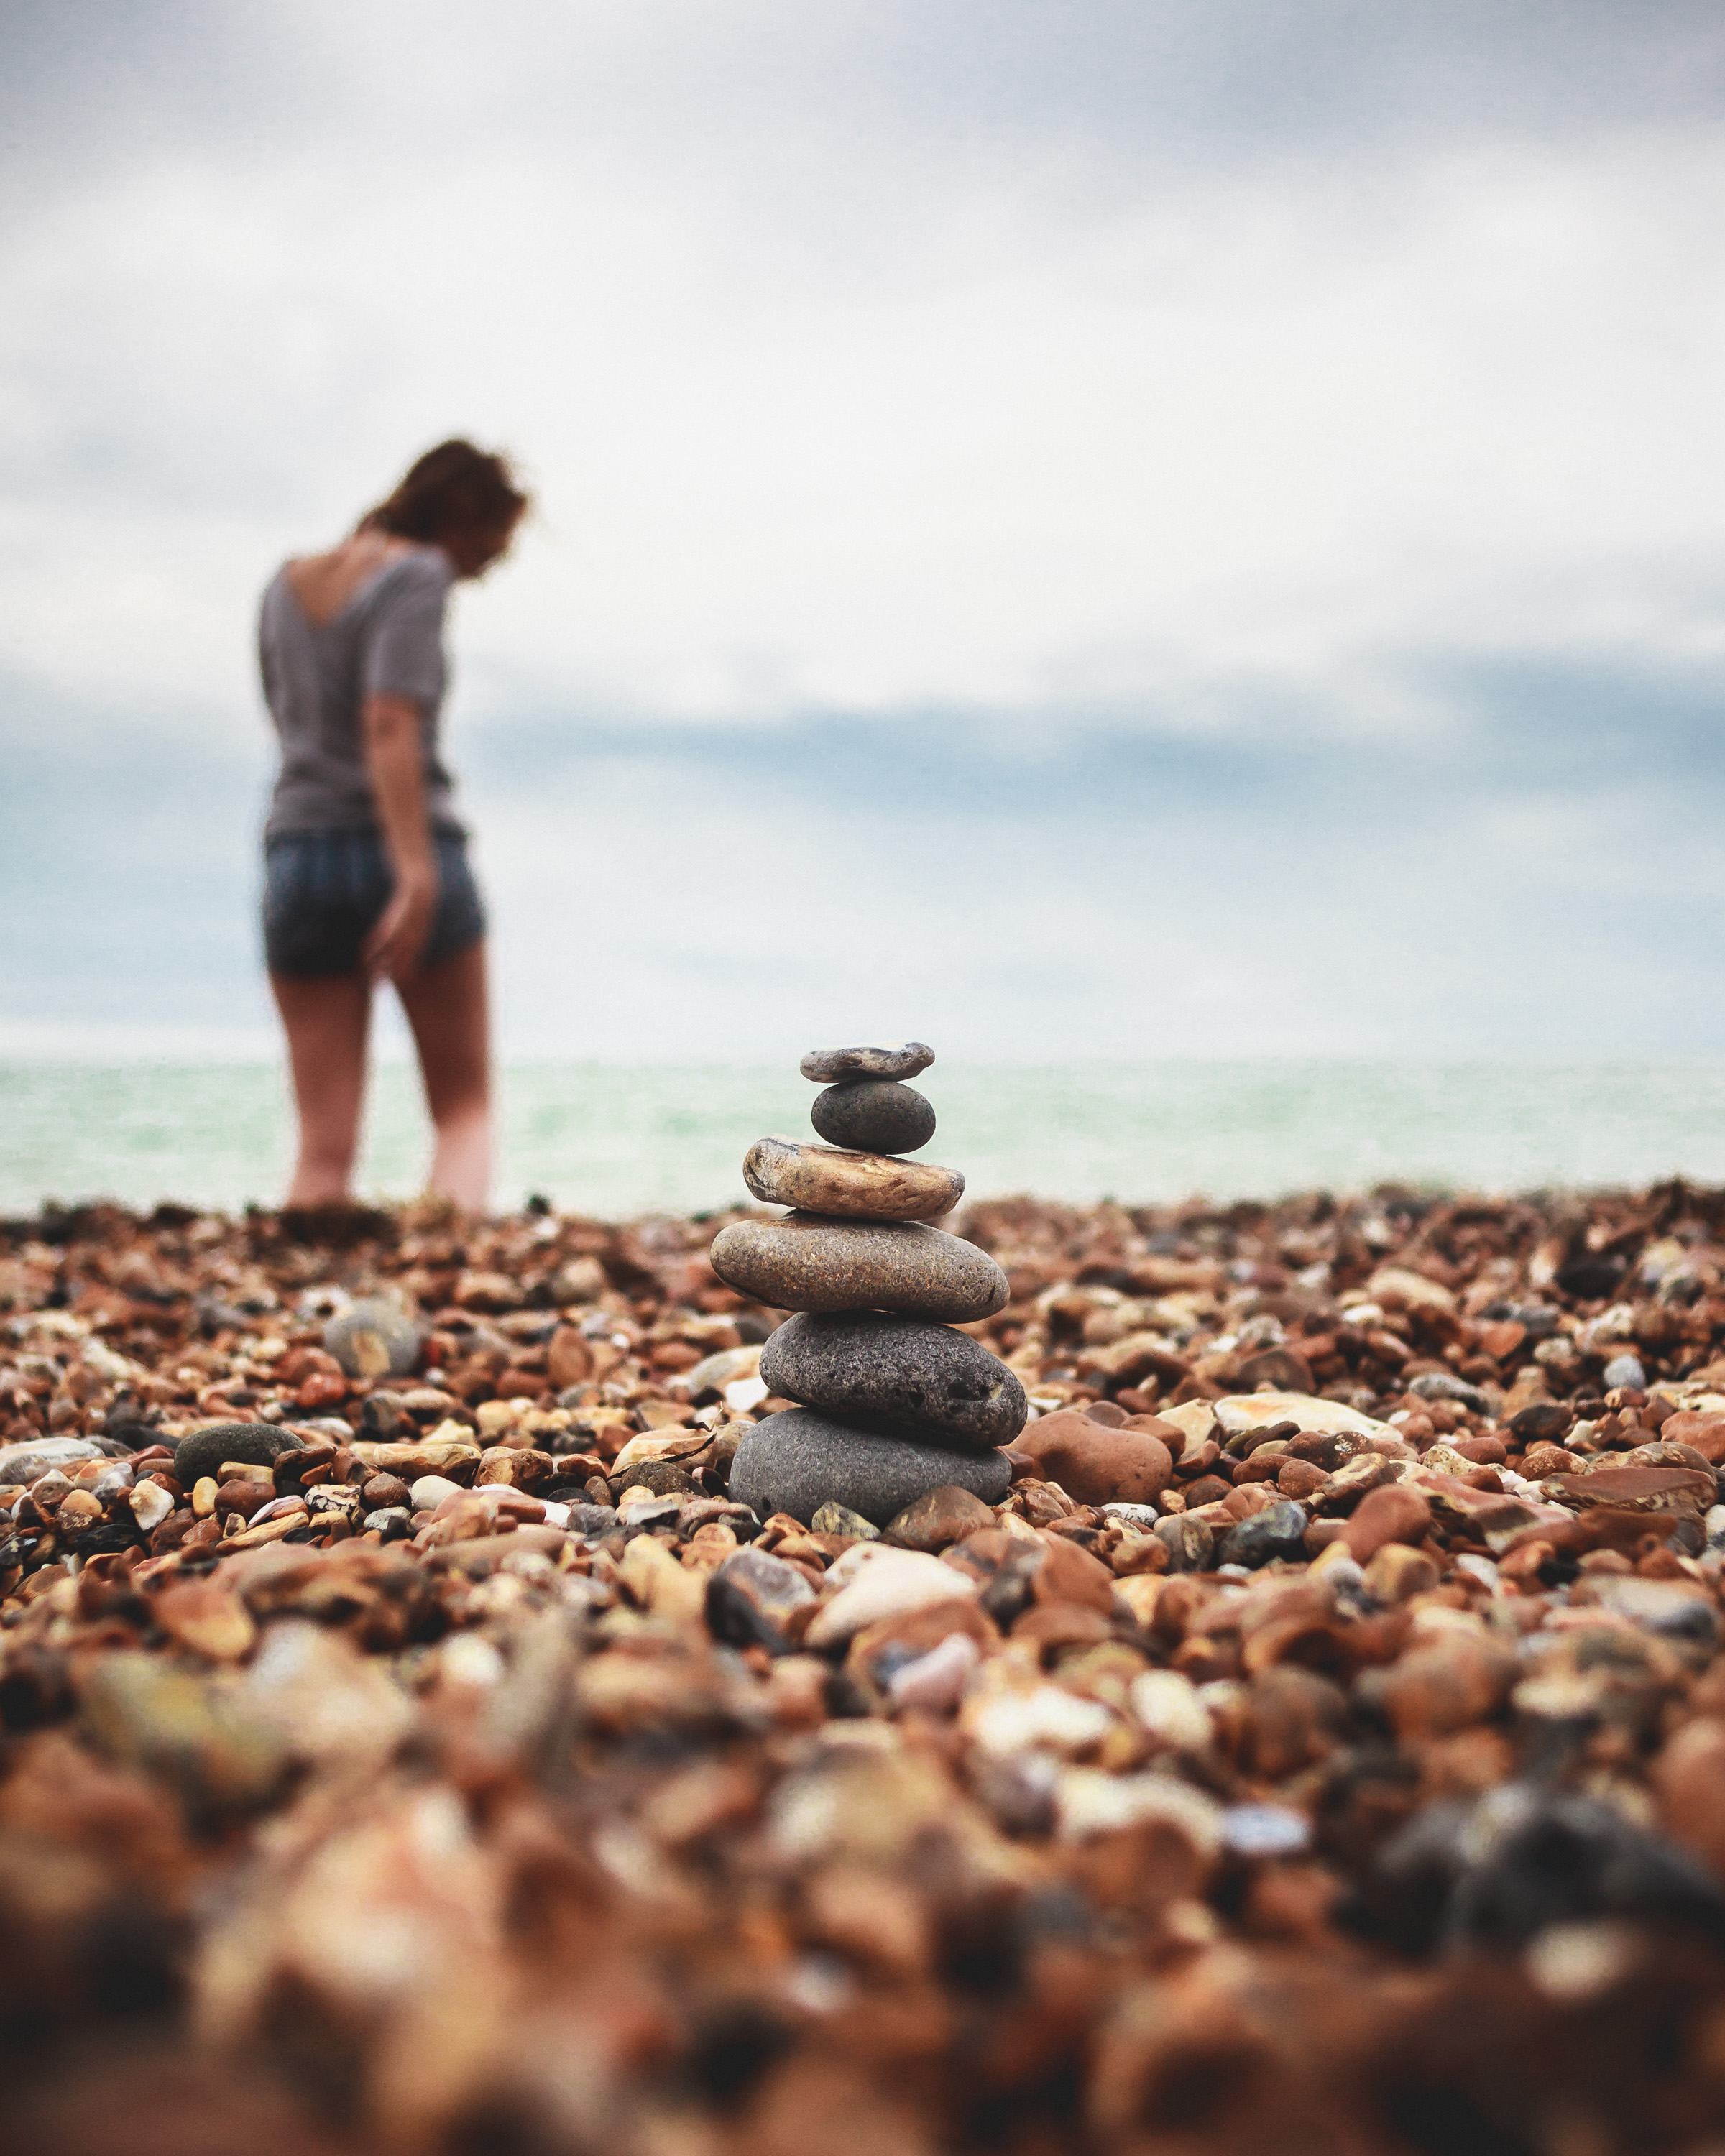 Zen stone tower built of pebbles on the beach with girl walking into the see in the distance